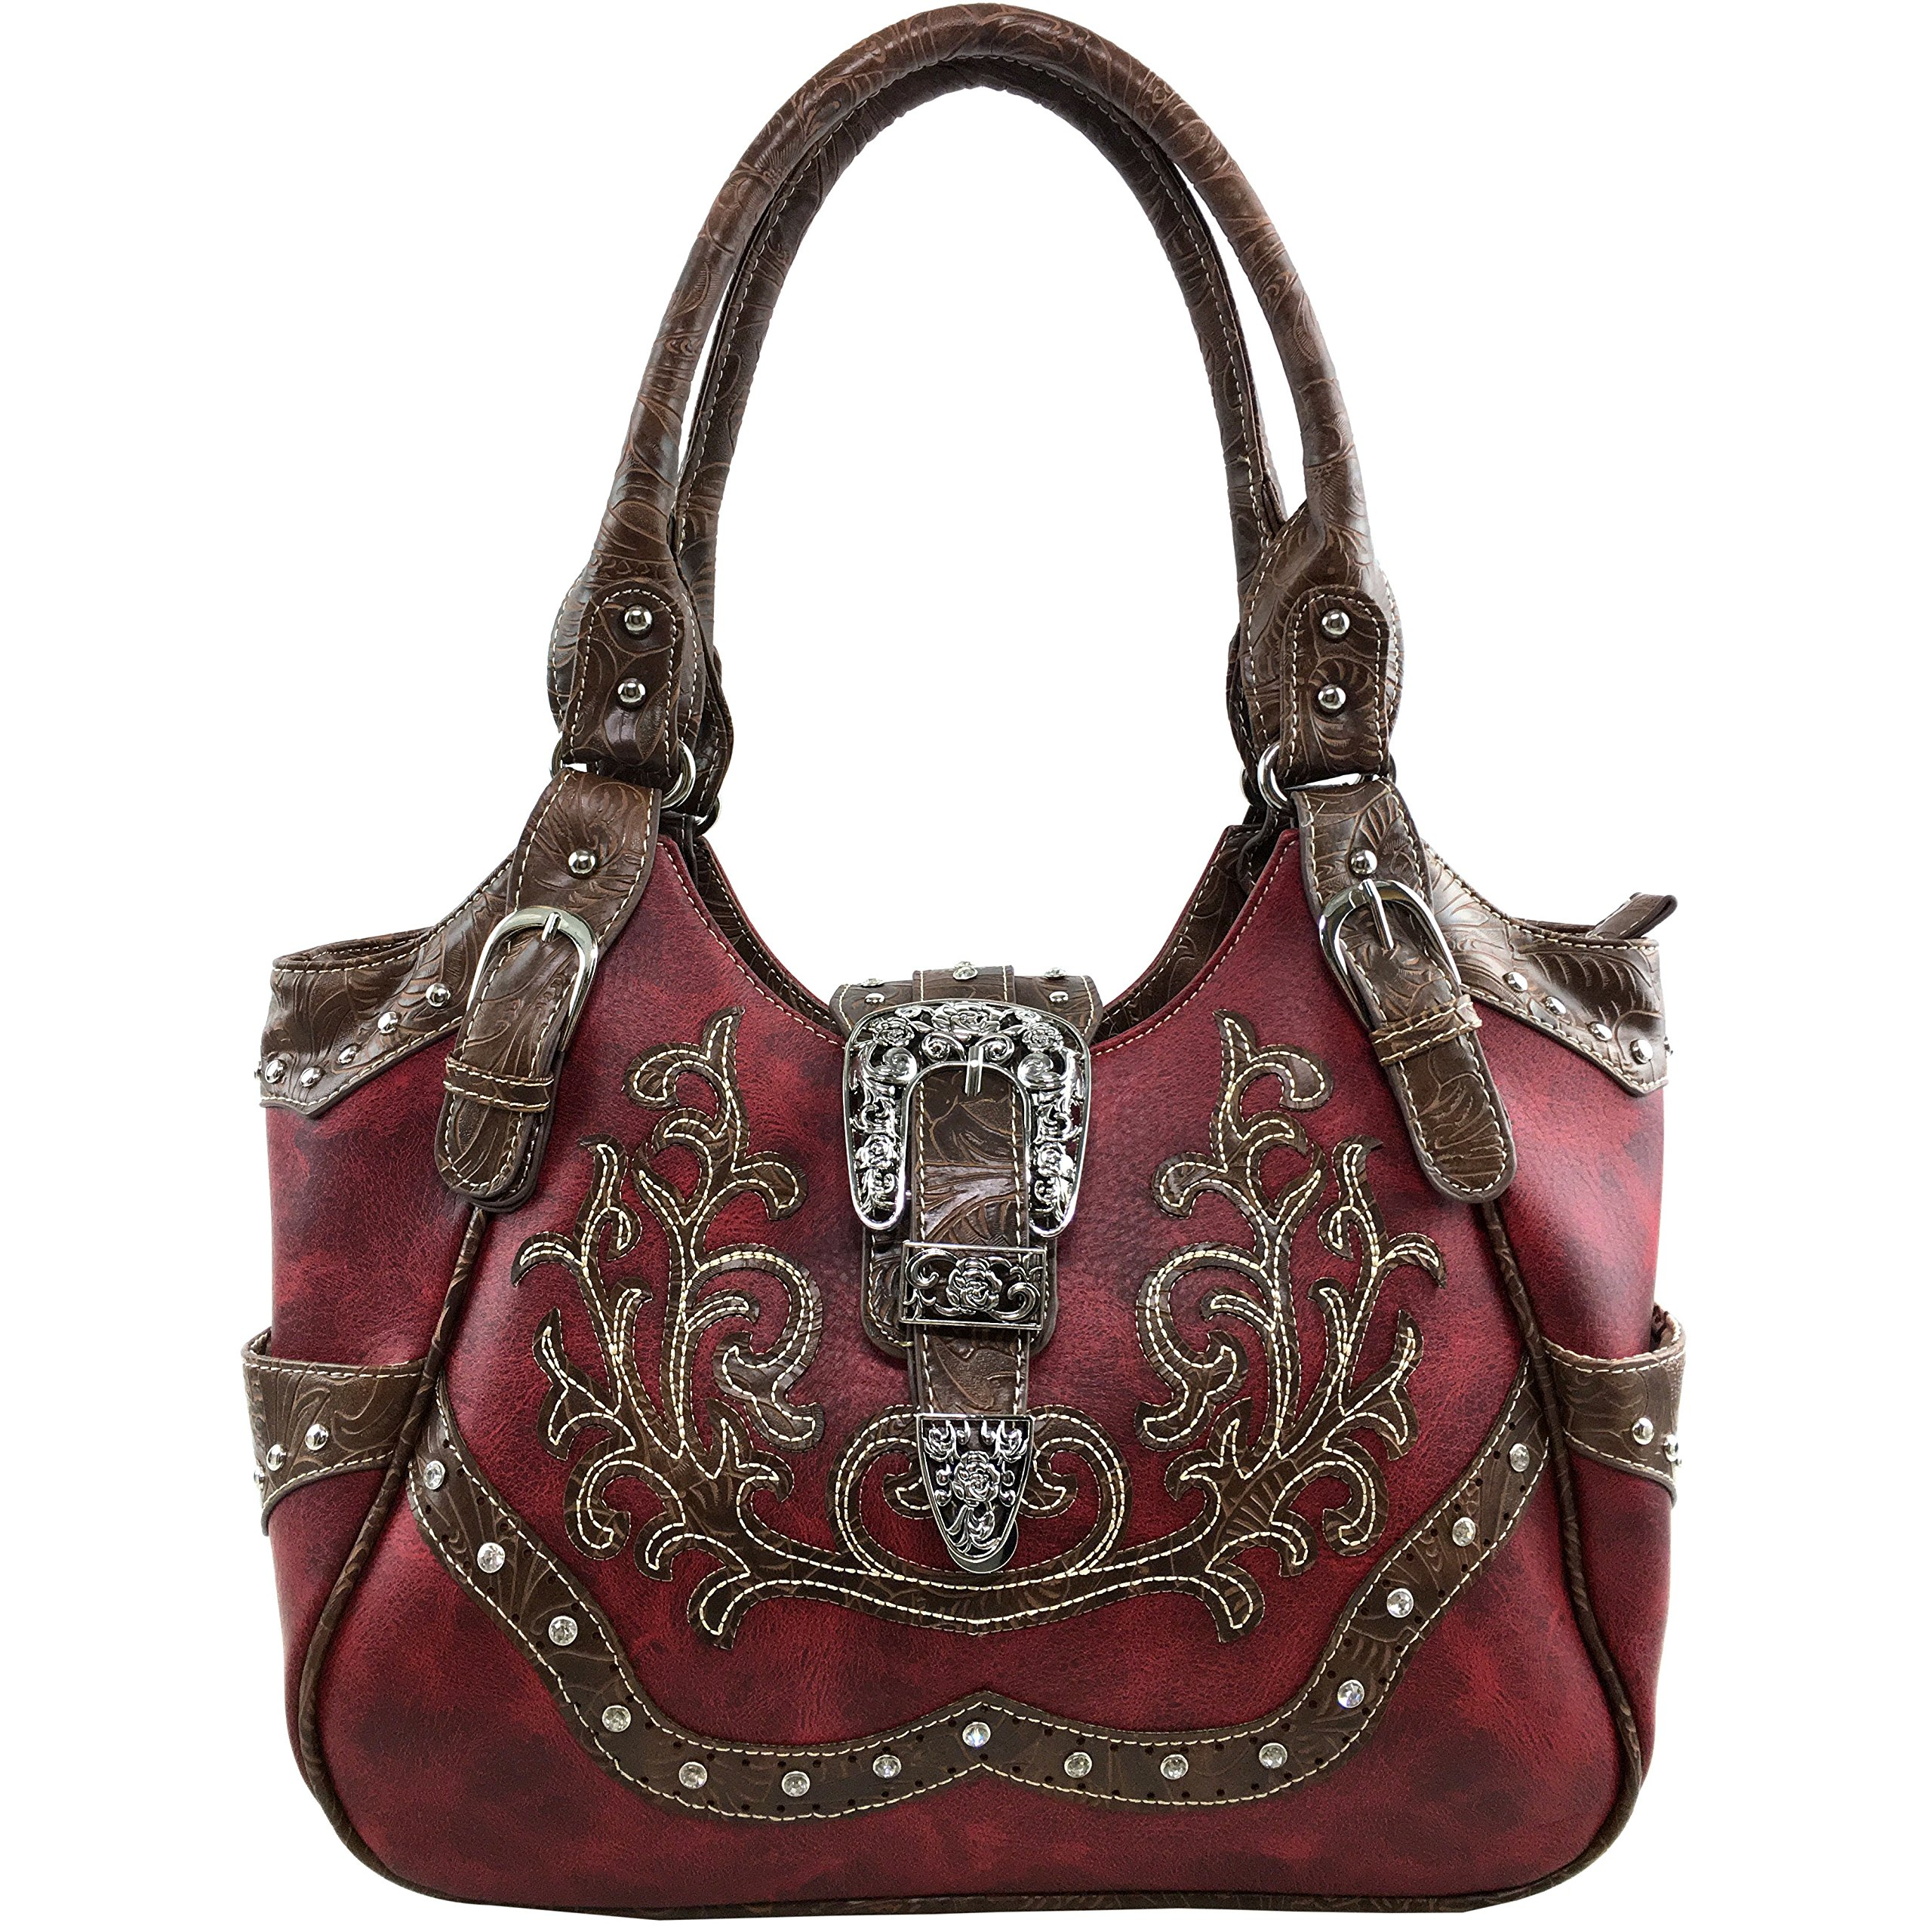 Justin West Tooled Laser Cut Leather Floral Embroidery Rhinestone Buckle Studded Shoulder Concealed Carry Tote Style Handbag Purse (Red Purse)